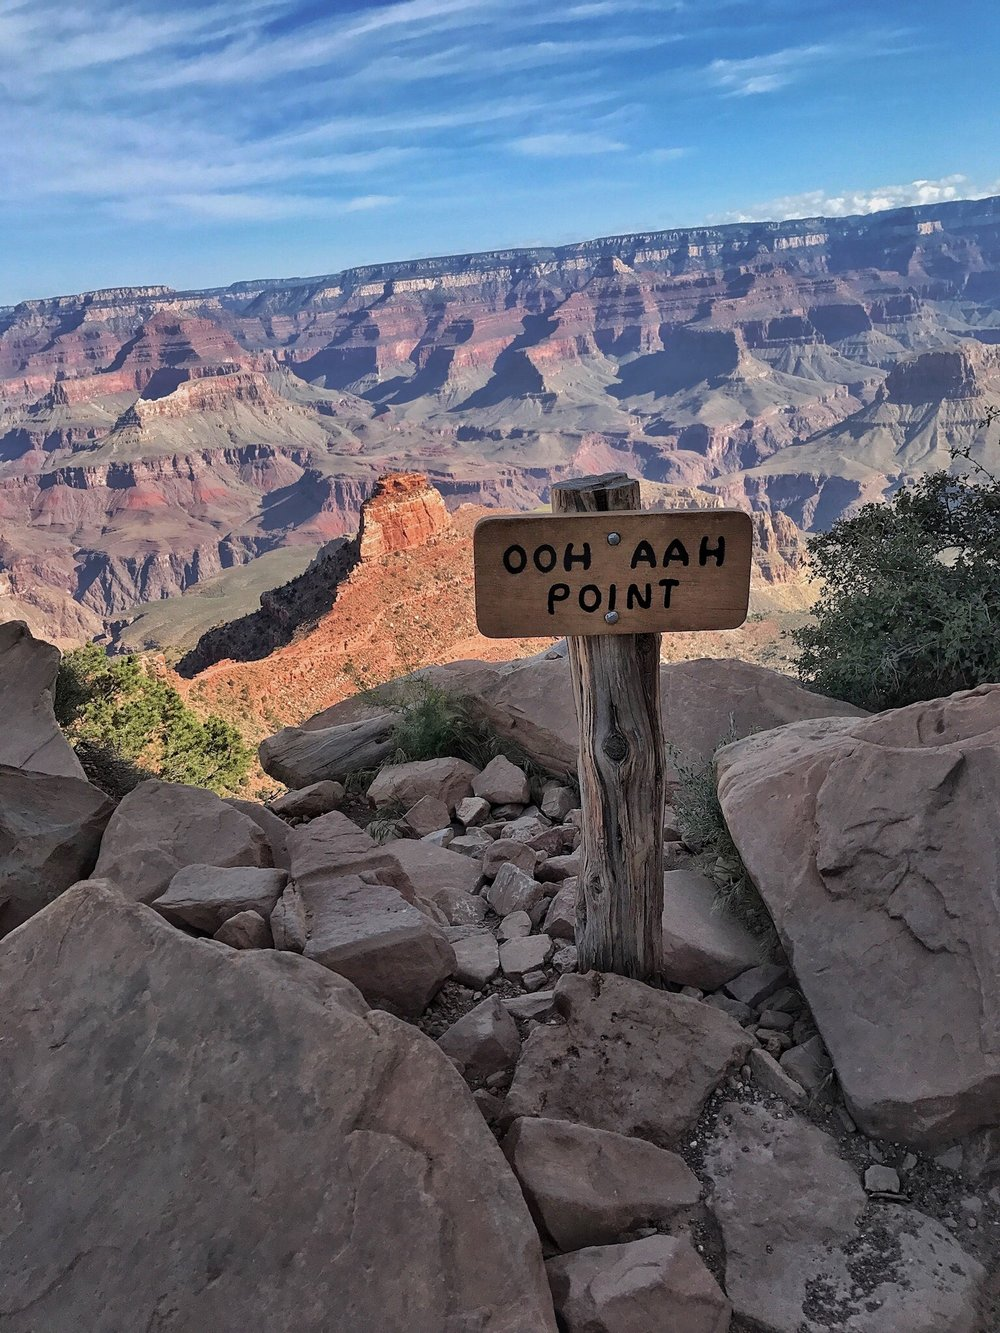 Ooh Aah Point, South Kaibab Trail, South Rim, Grand Canyon